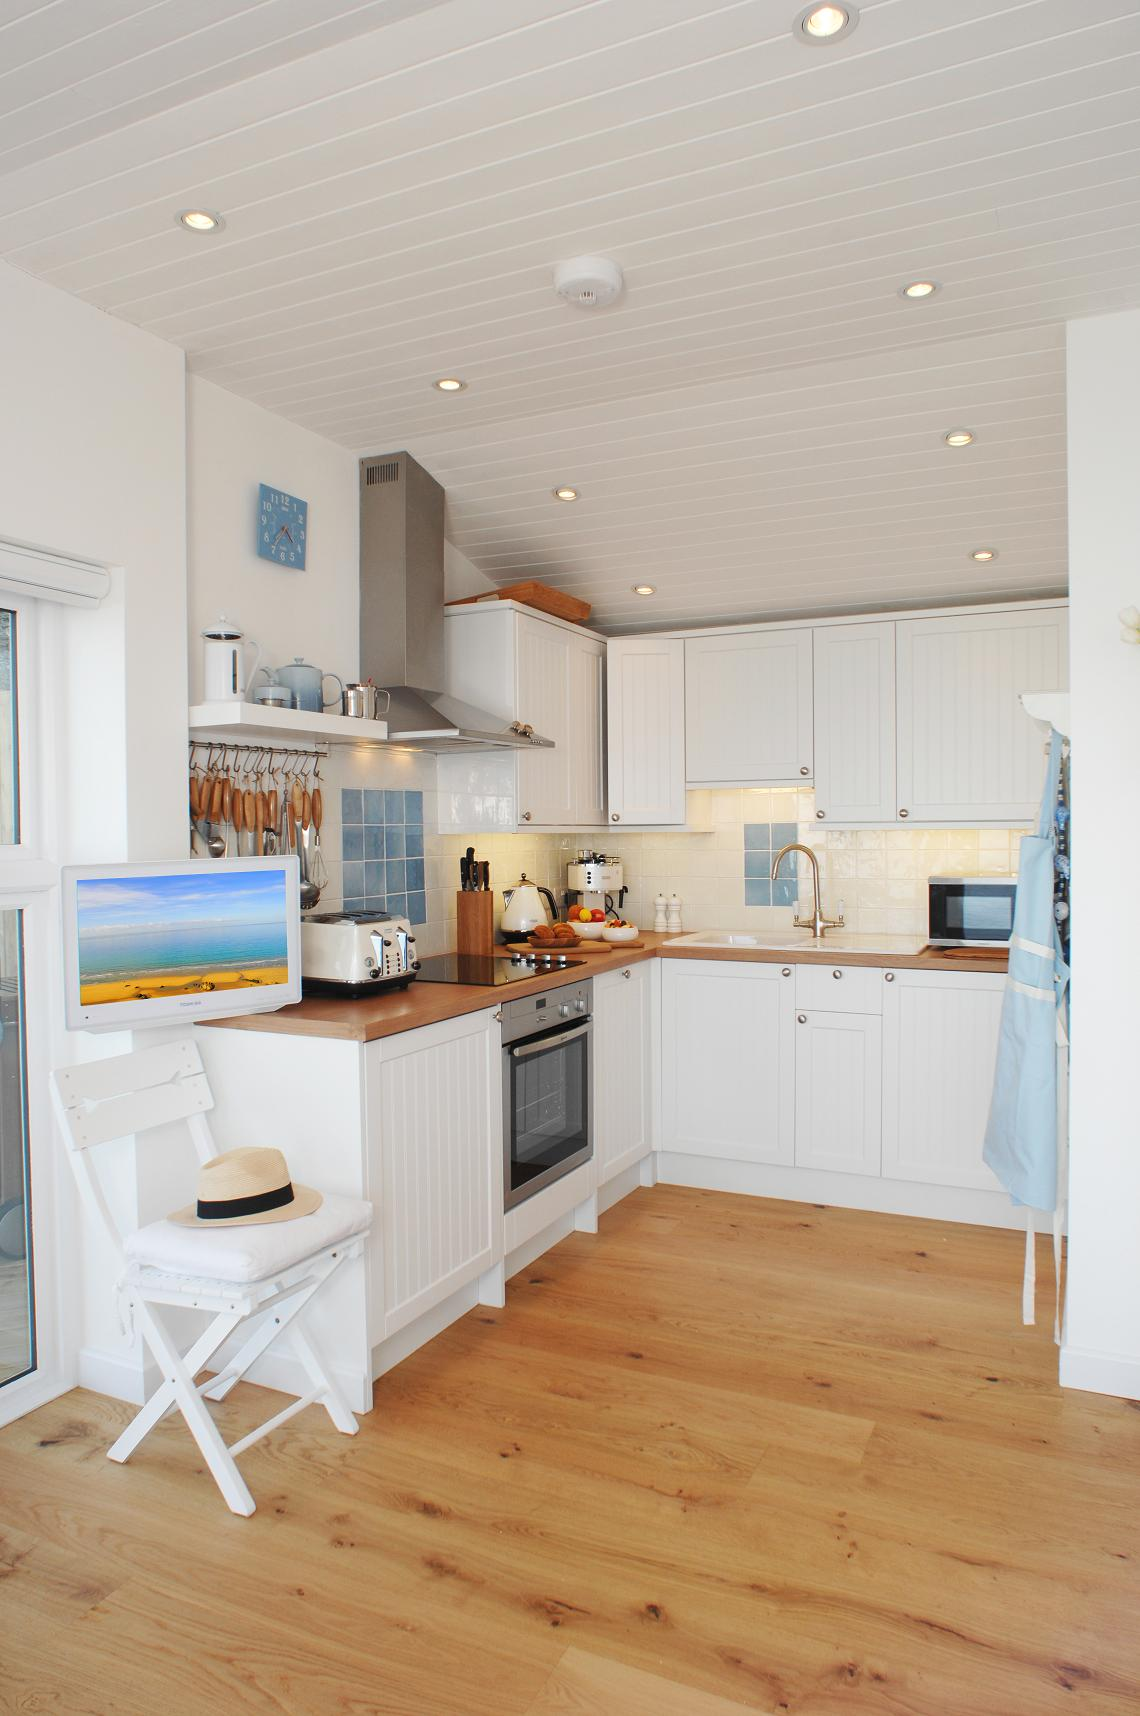 Gallery the edge an idyllic beach cottage in cornwall for Beach house kitchen plans